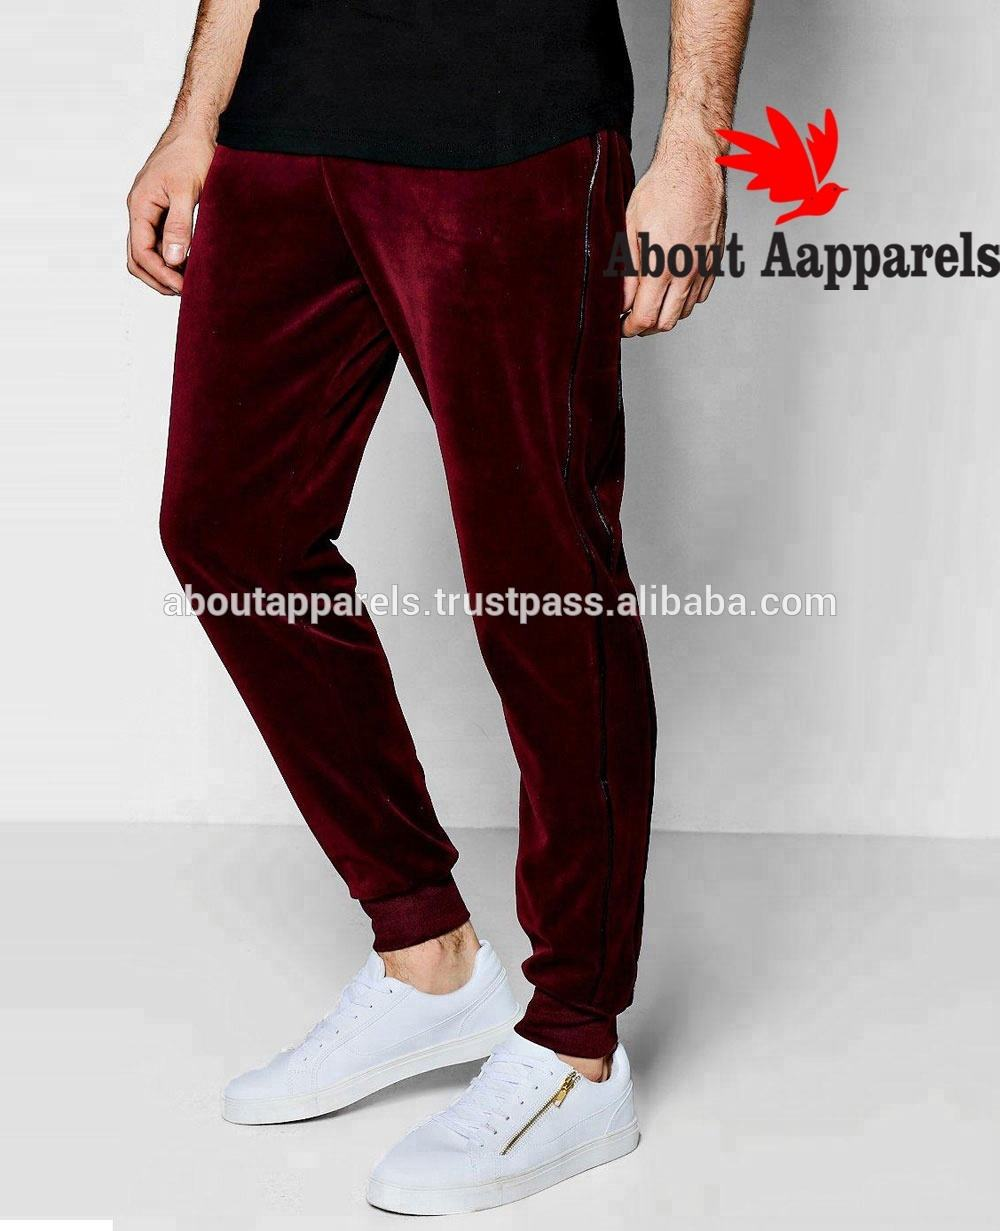 Clothes OEM Factory Wholesale Arabic Casual Twill Long Pants,Skinny Fit Velour Joggers with Piping